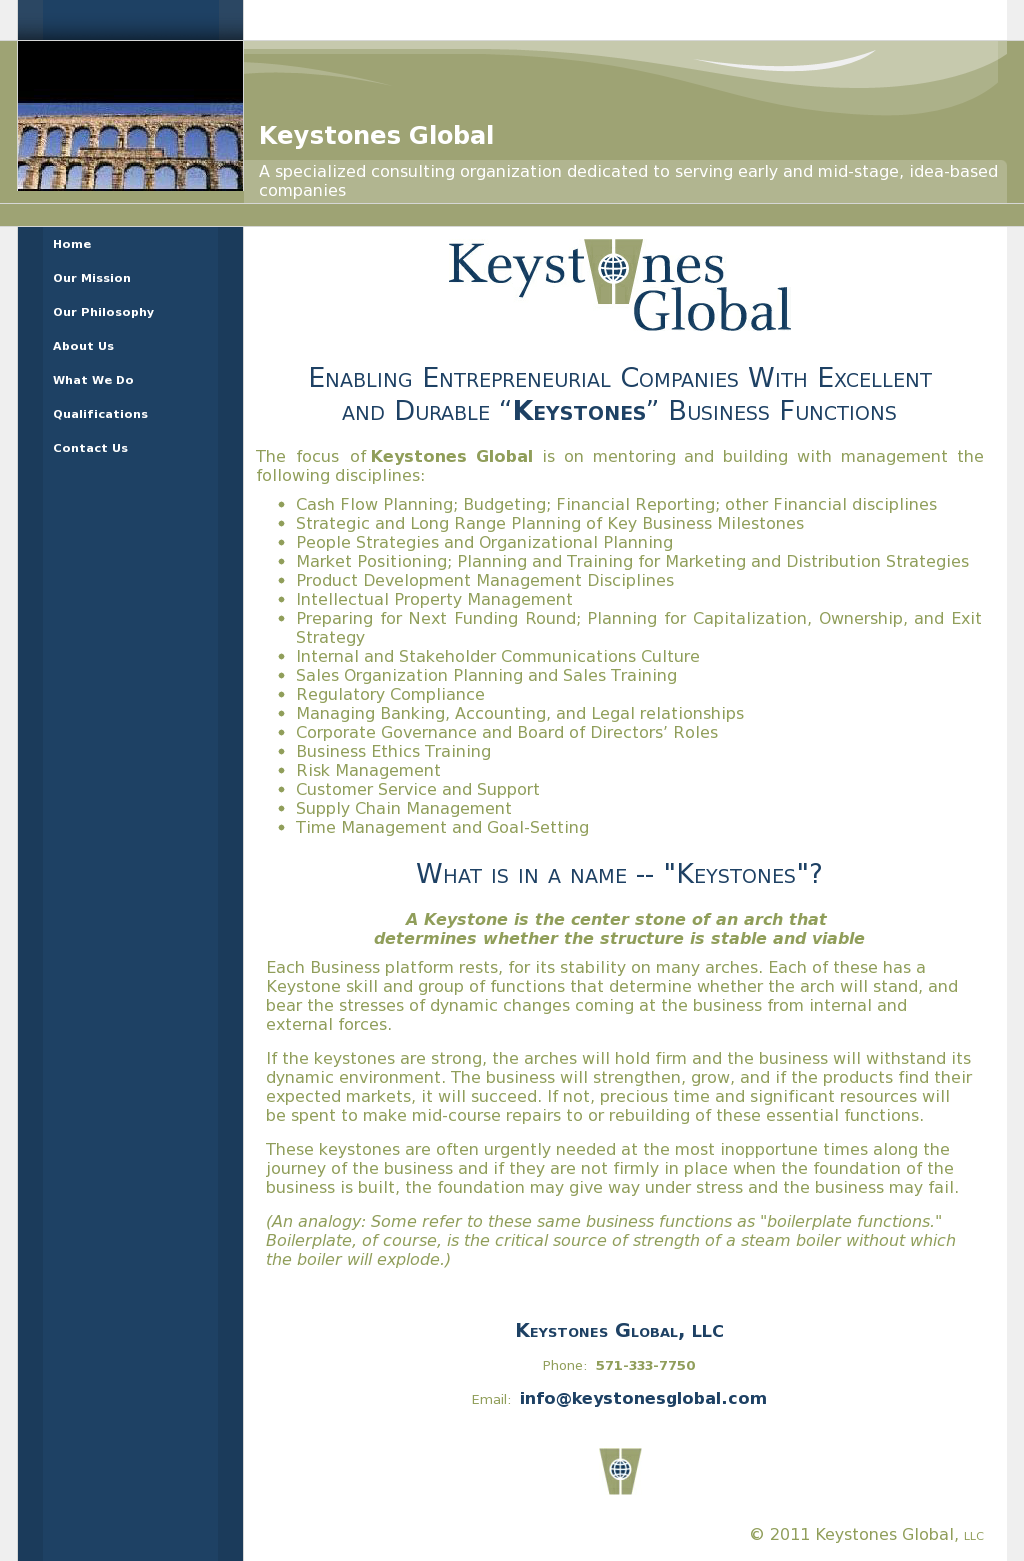 Keystones Global Competitors, Revenue and Employees - Owler